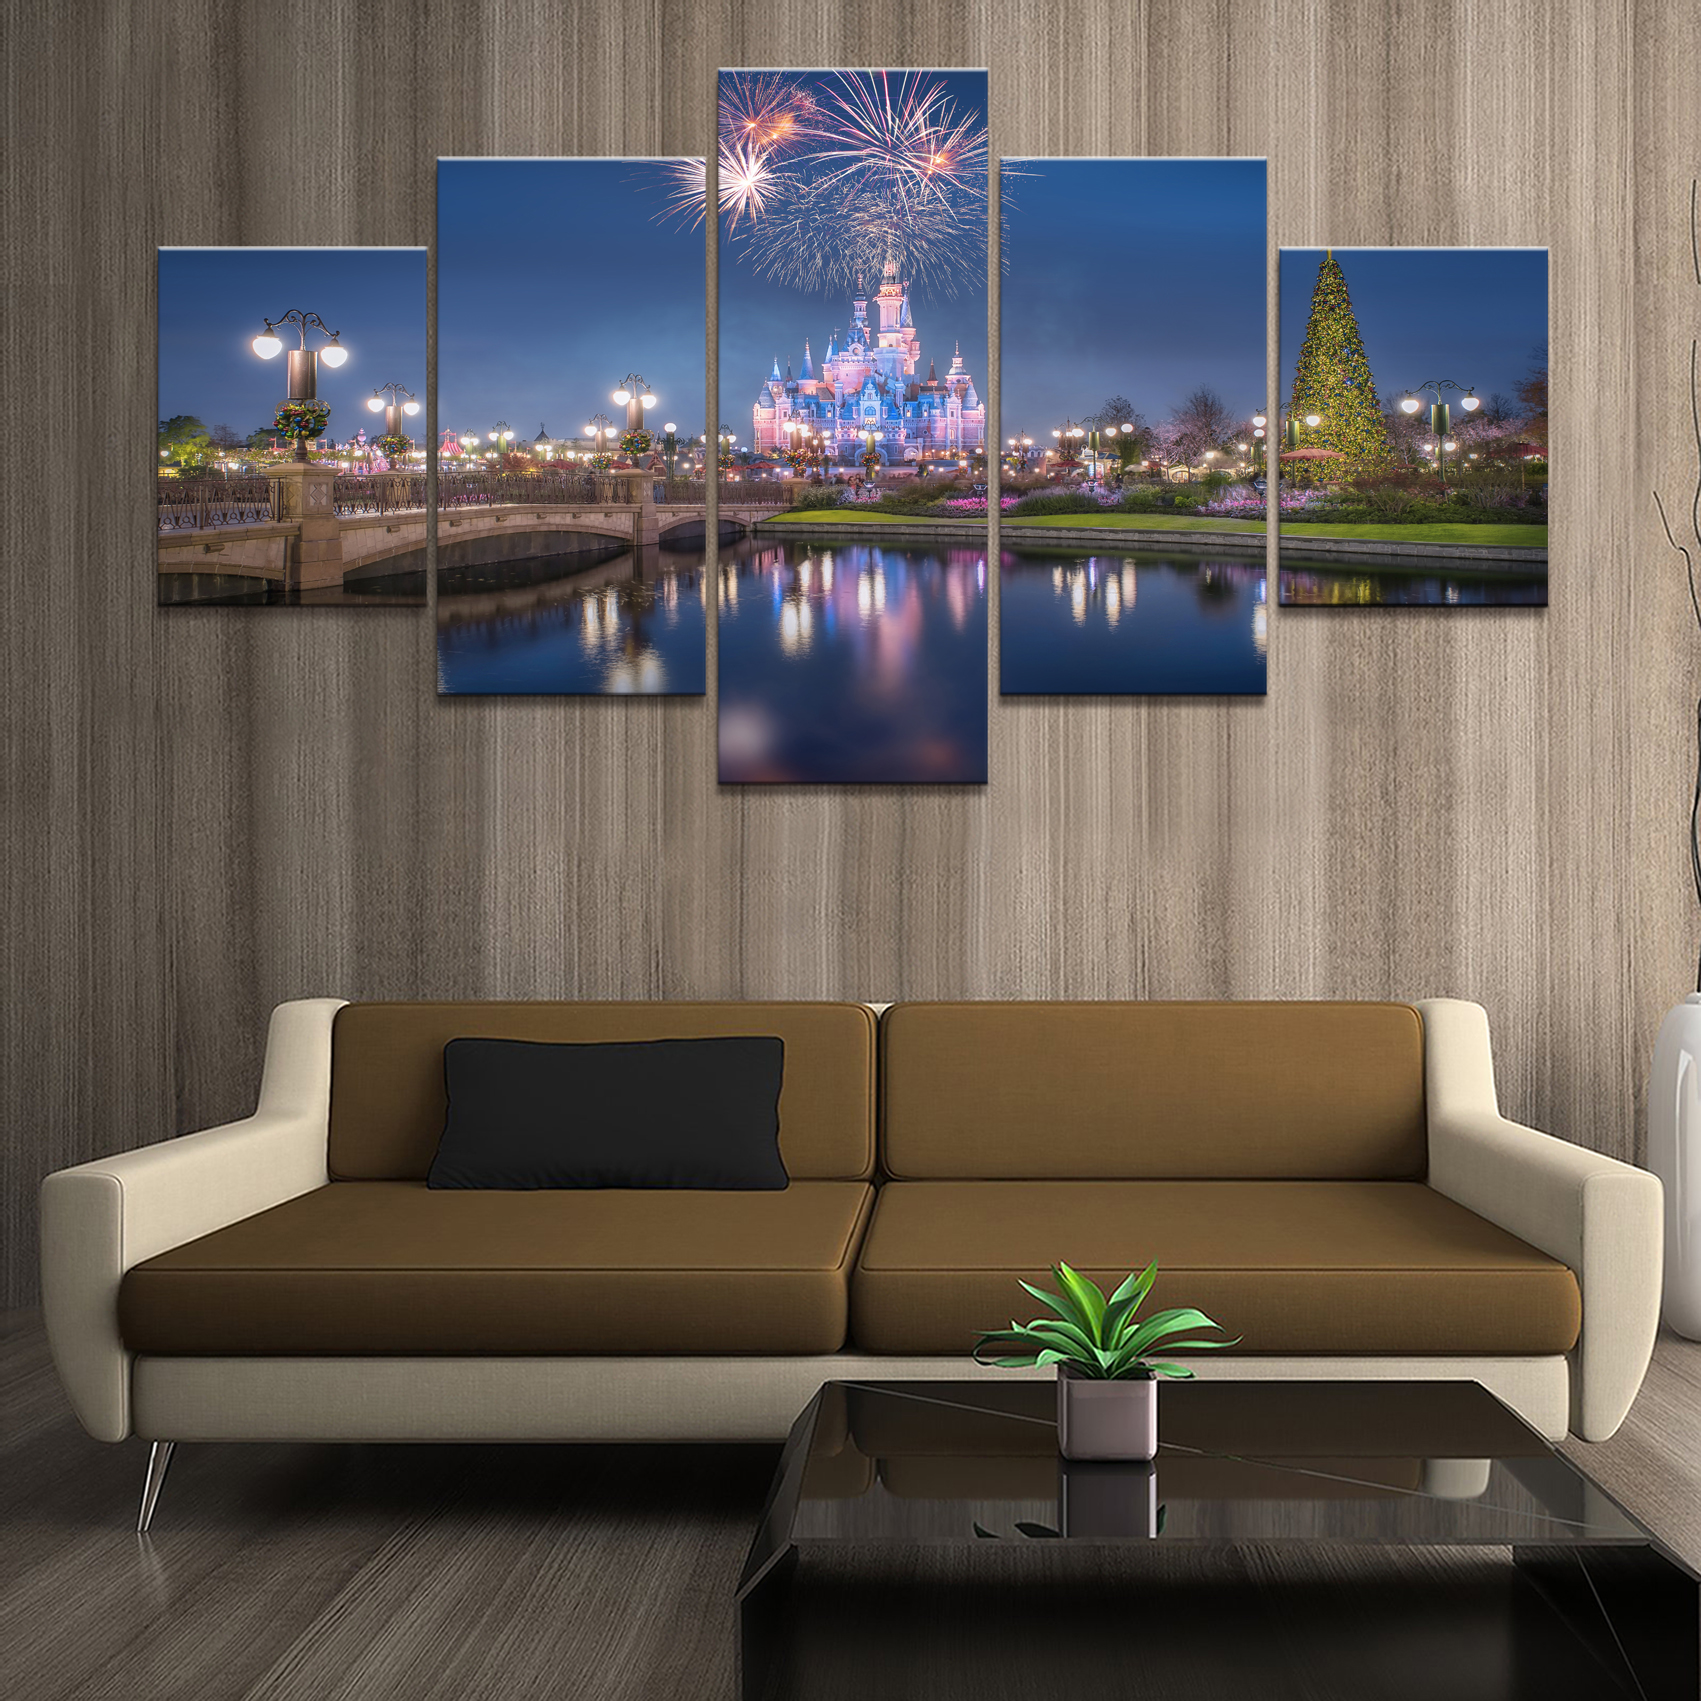 Us 6 12 49 Off Home Decor Poster Pictures Prints Canvas 5 Piece Modular Disney Castle Fireworks Scenery Living Room Decorative Painting Framed In